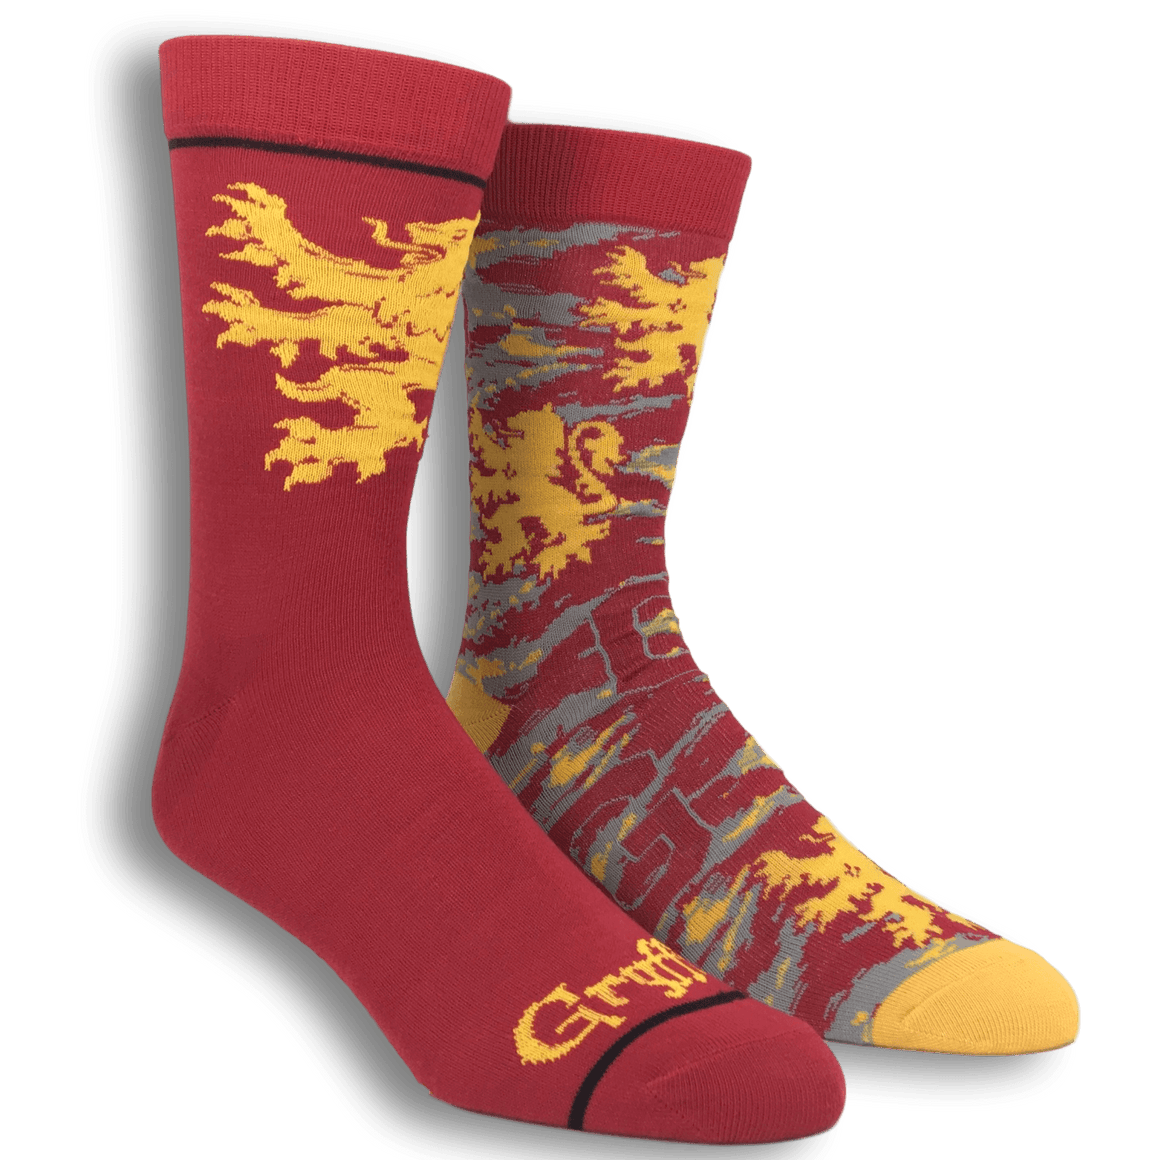 2 Pair Pack Gryffindor Harry Potter Socks - The Sock Spot